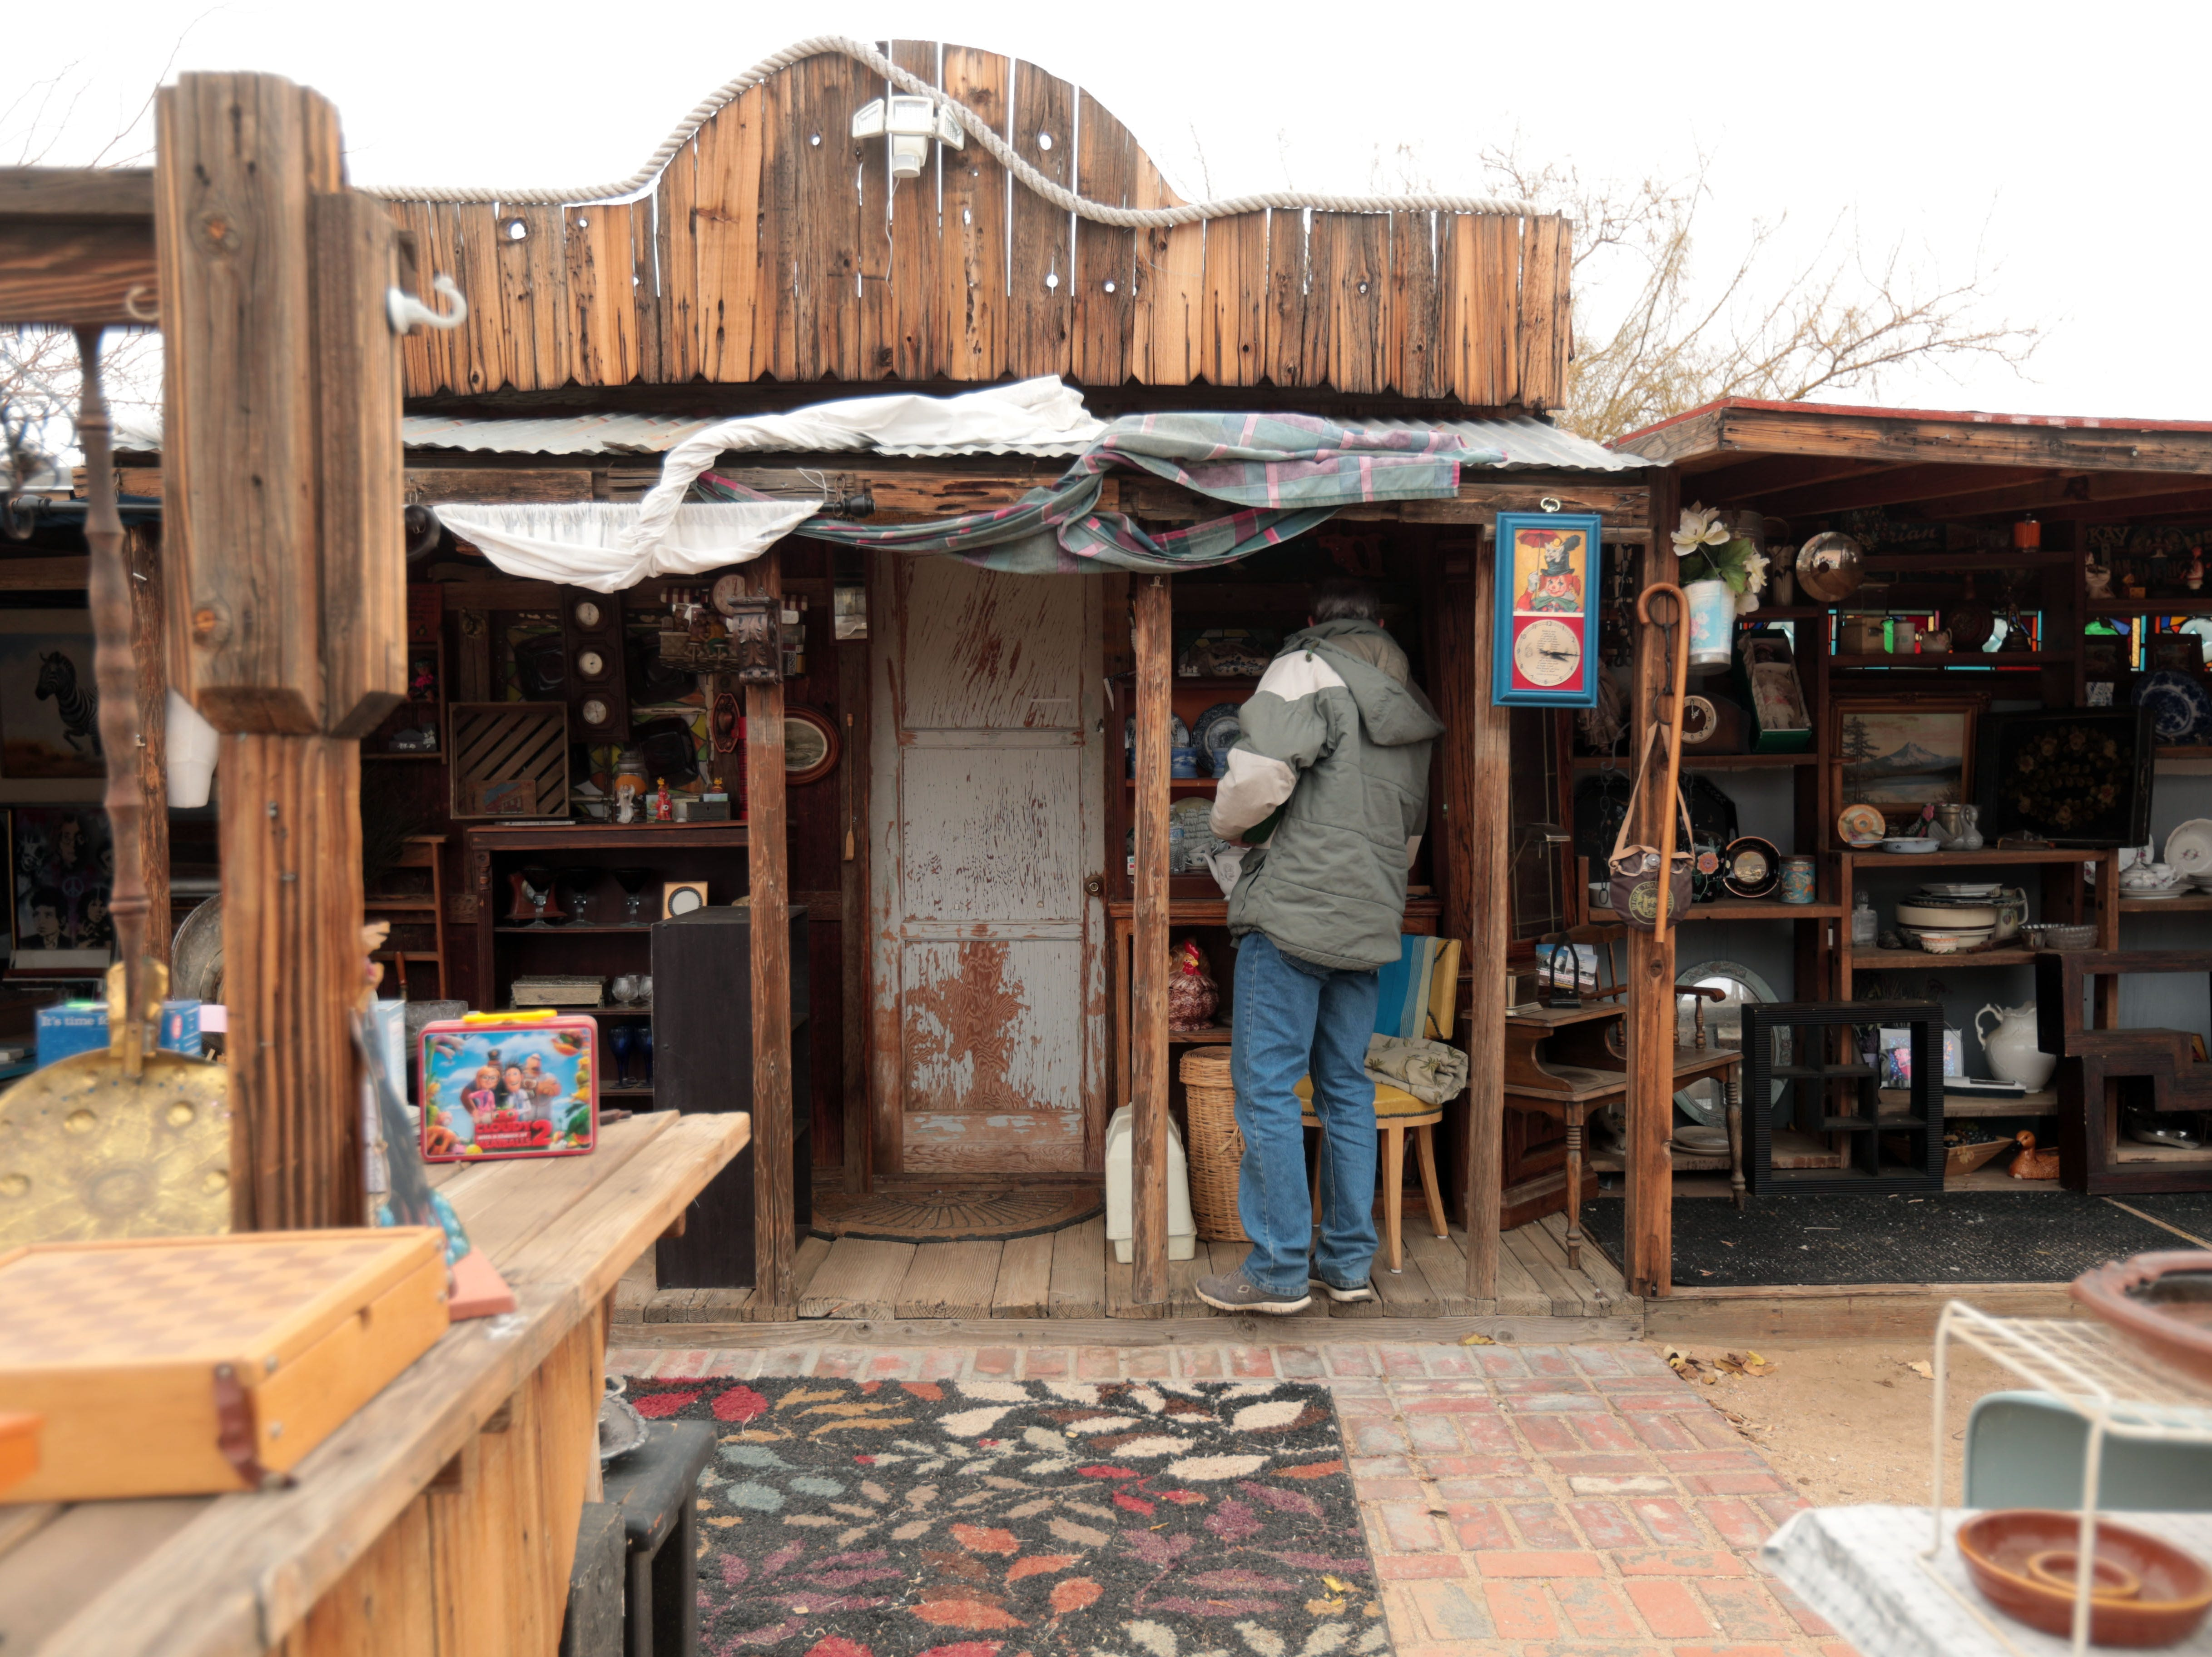 The center of the Sky Village Swap Meet in Yucca Valley has more permeant structures. Photo taken on Saturday, January 5, 2019.